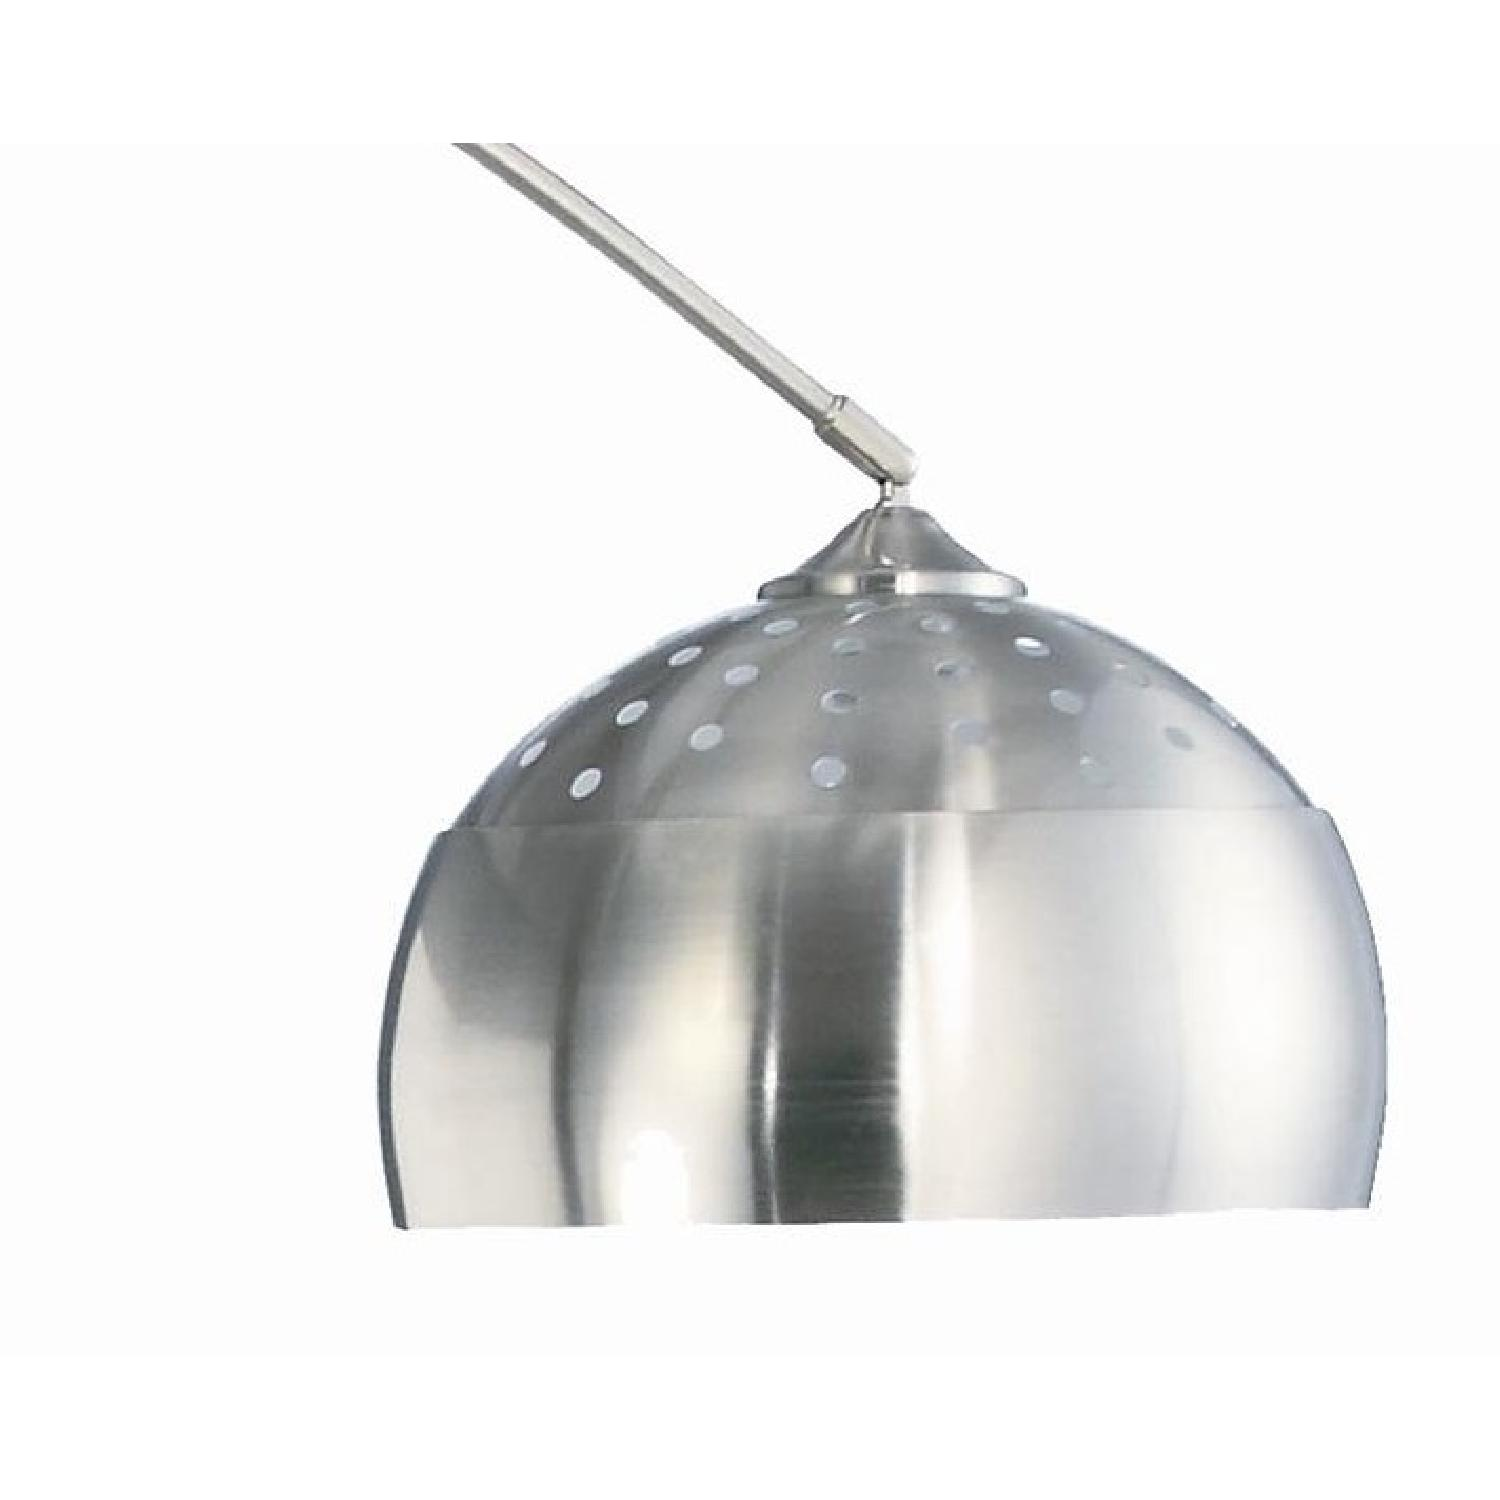 Contemporary Arched Lamp in Chrome Finish with Brushed Steel and Marble Base - image-2